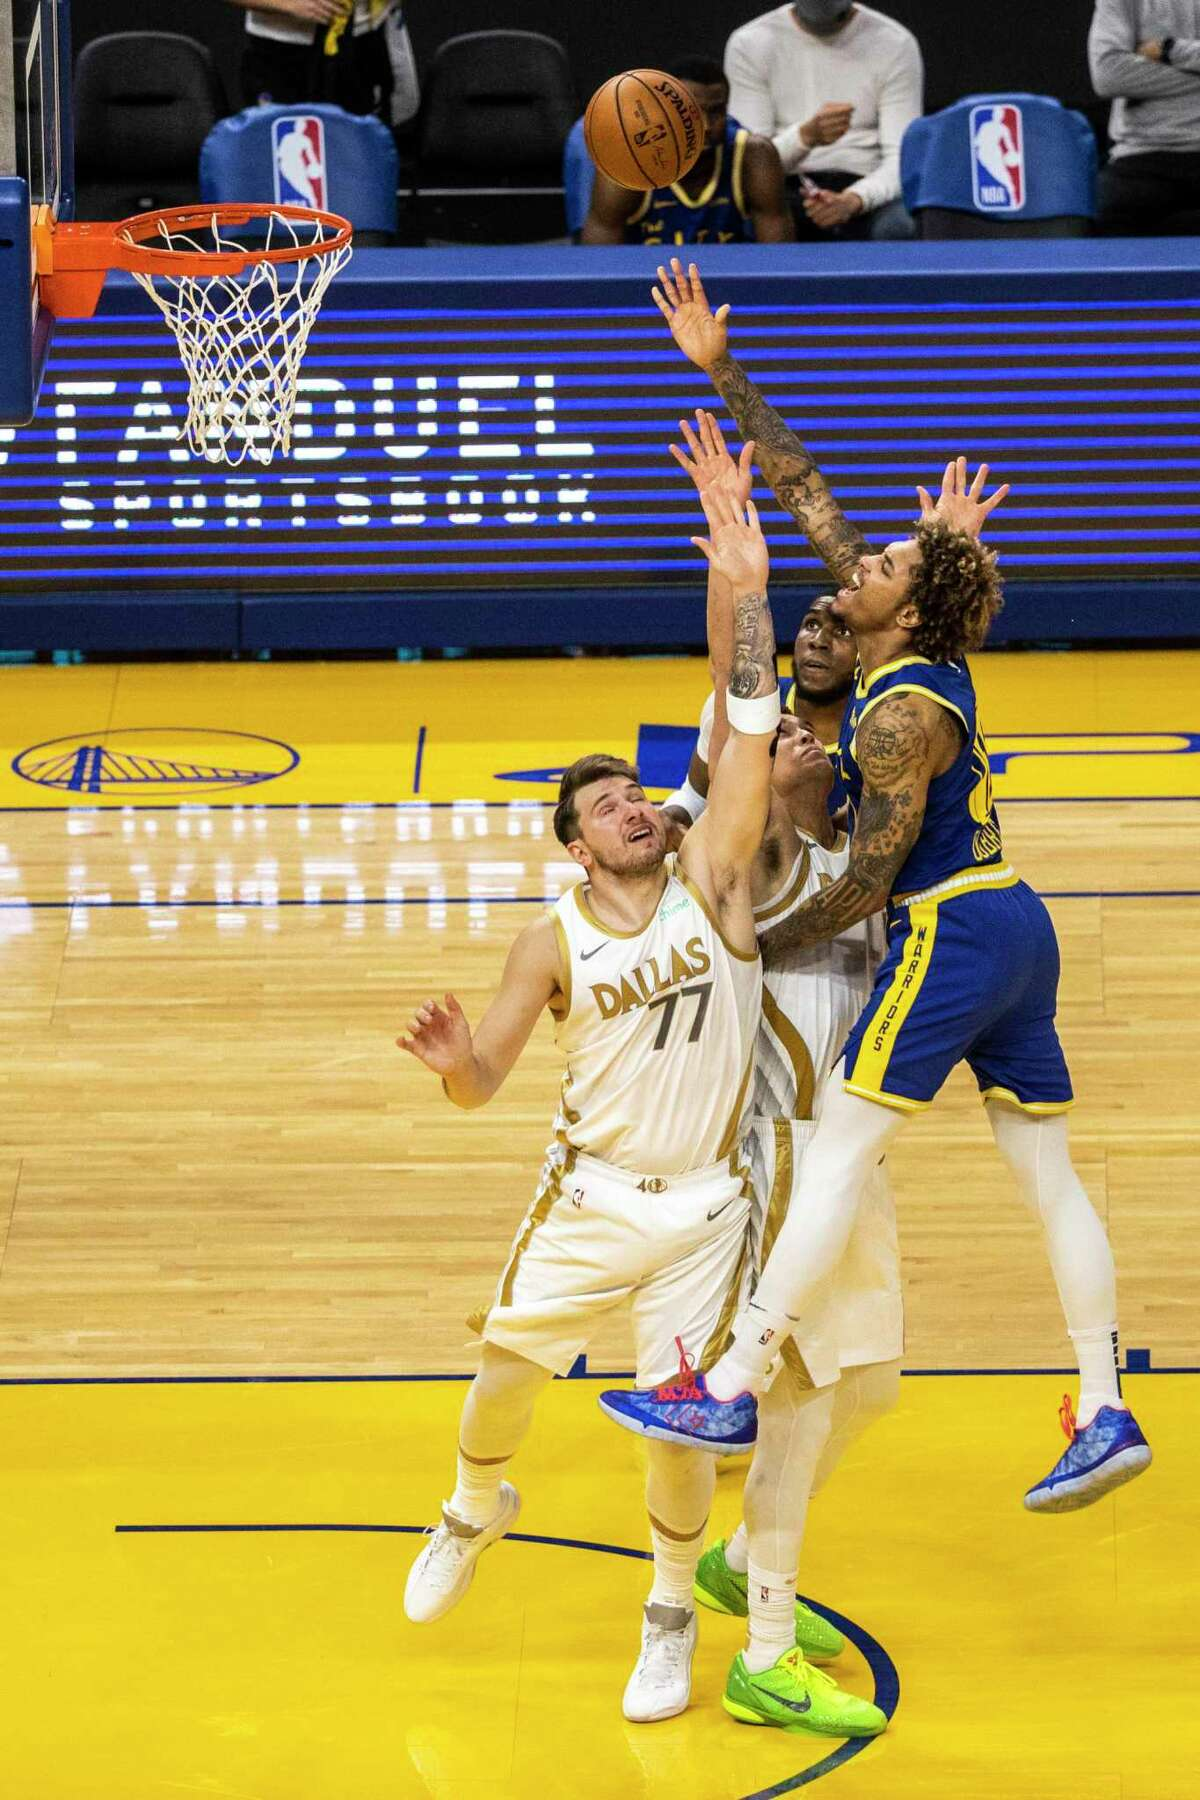 Golden State Warriors guard Kelly Oubre Jr. (12) drives for a layup as Dallas Mavericks guard Luka Doncic (77) defends during the second quarter of their NBA basketball game at Chase Center in San Francisco, Calif. on Tuesday, April 27, 2021.